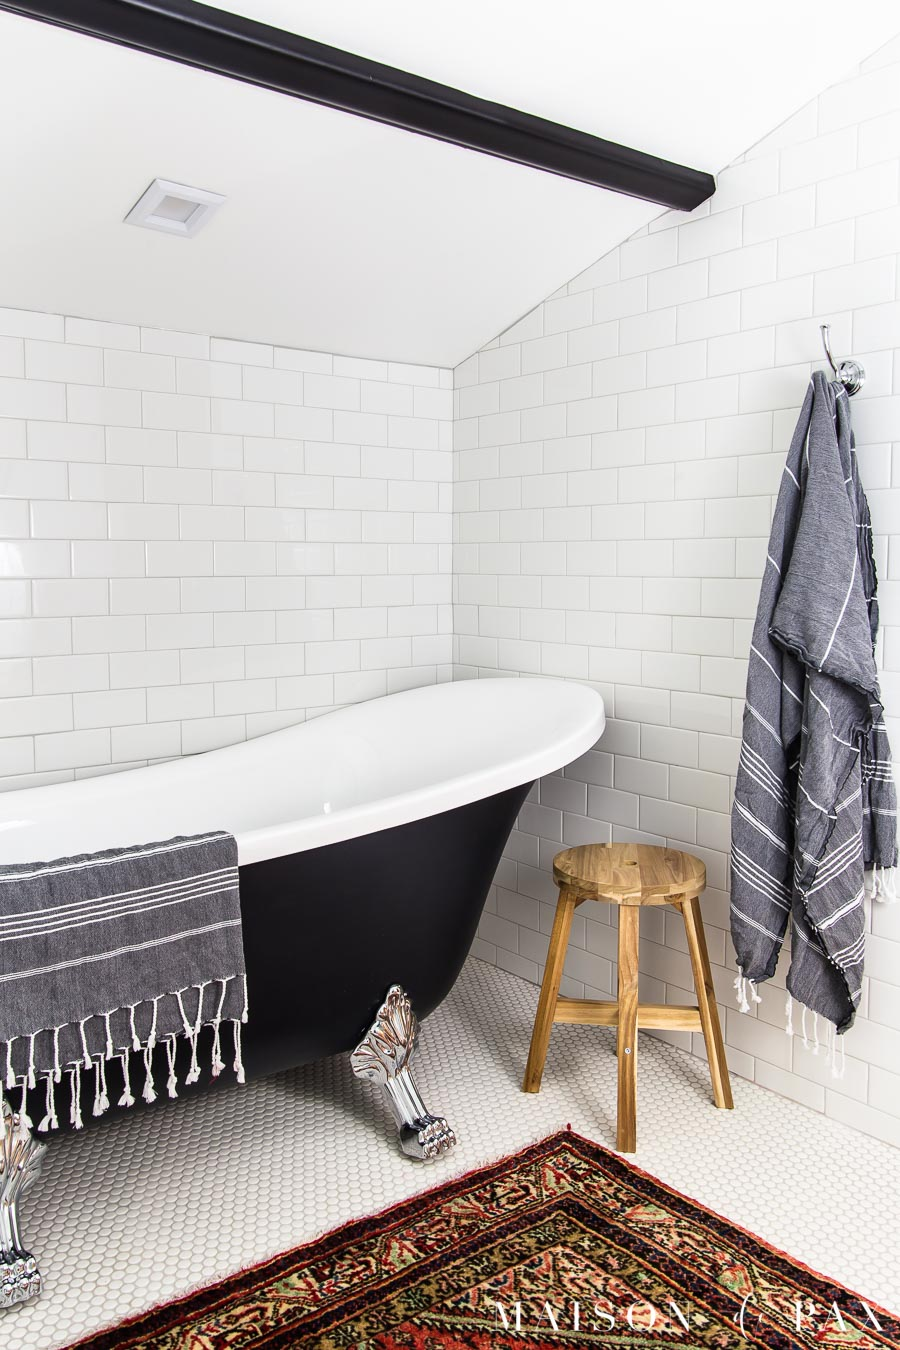 low angled ceiling above clawfoot tub in classic black and white bathroom | Maison de Pax